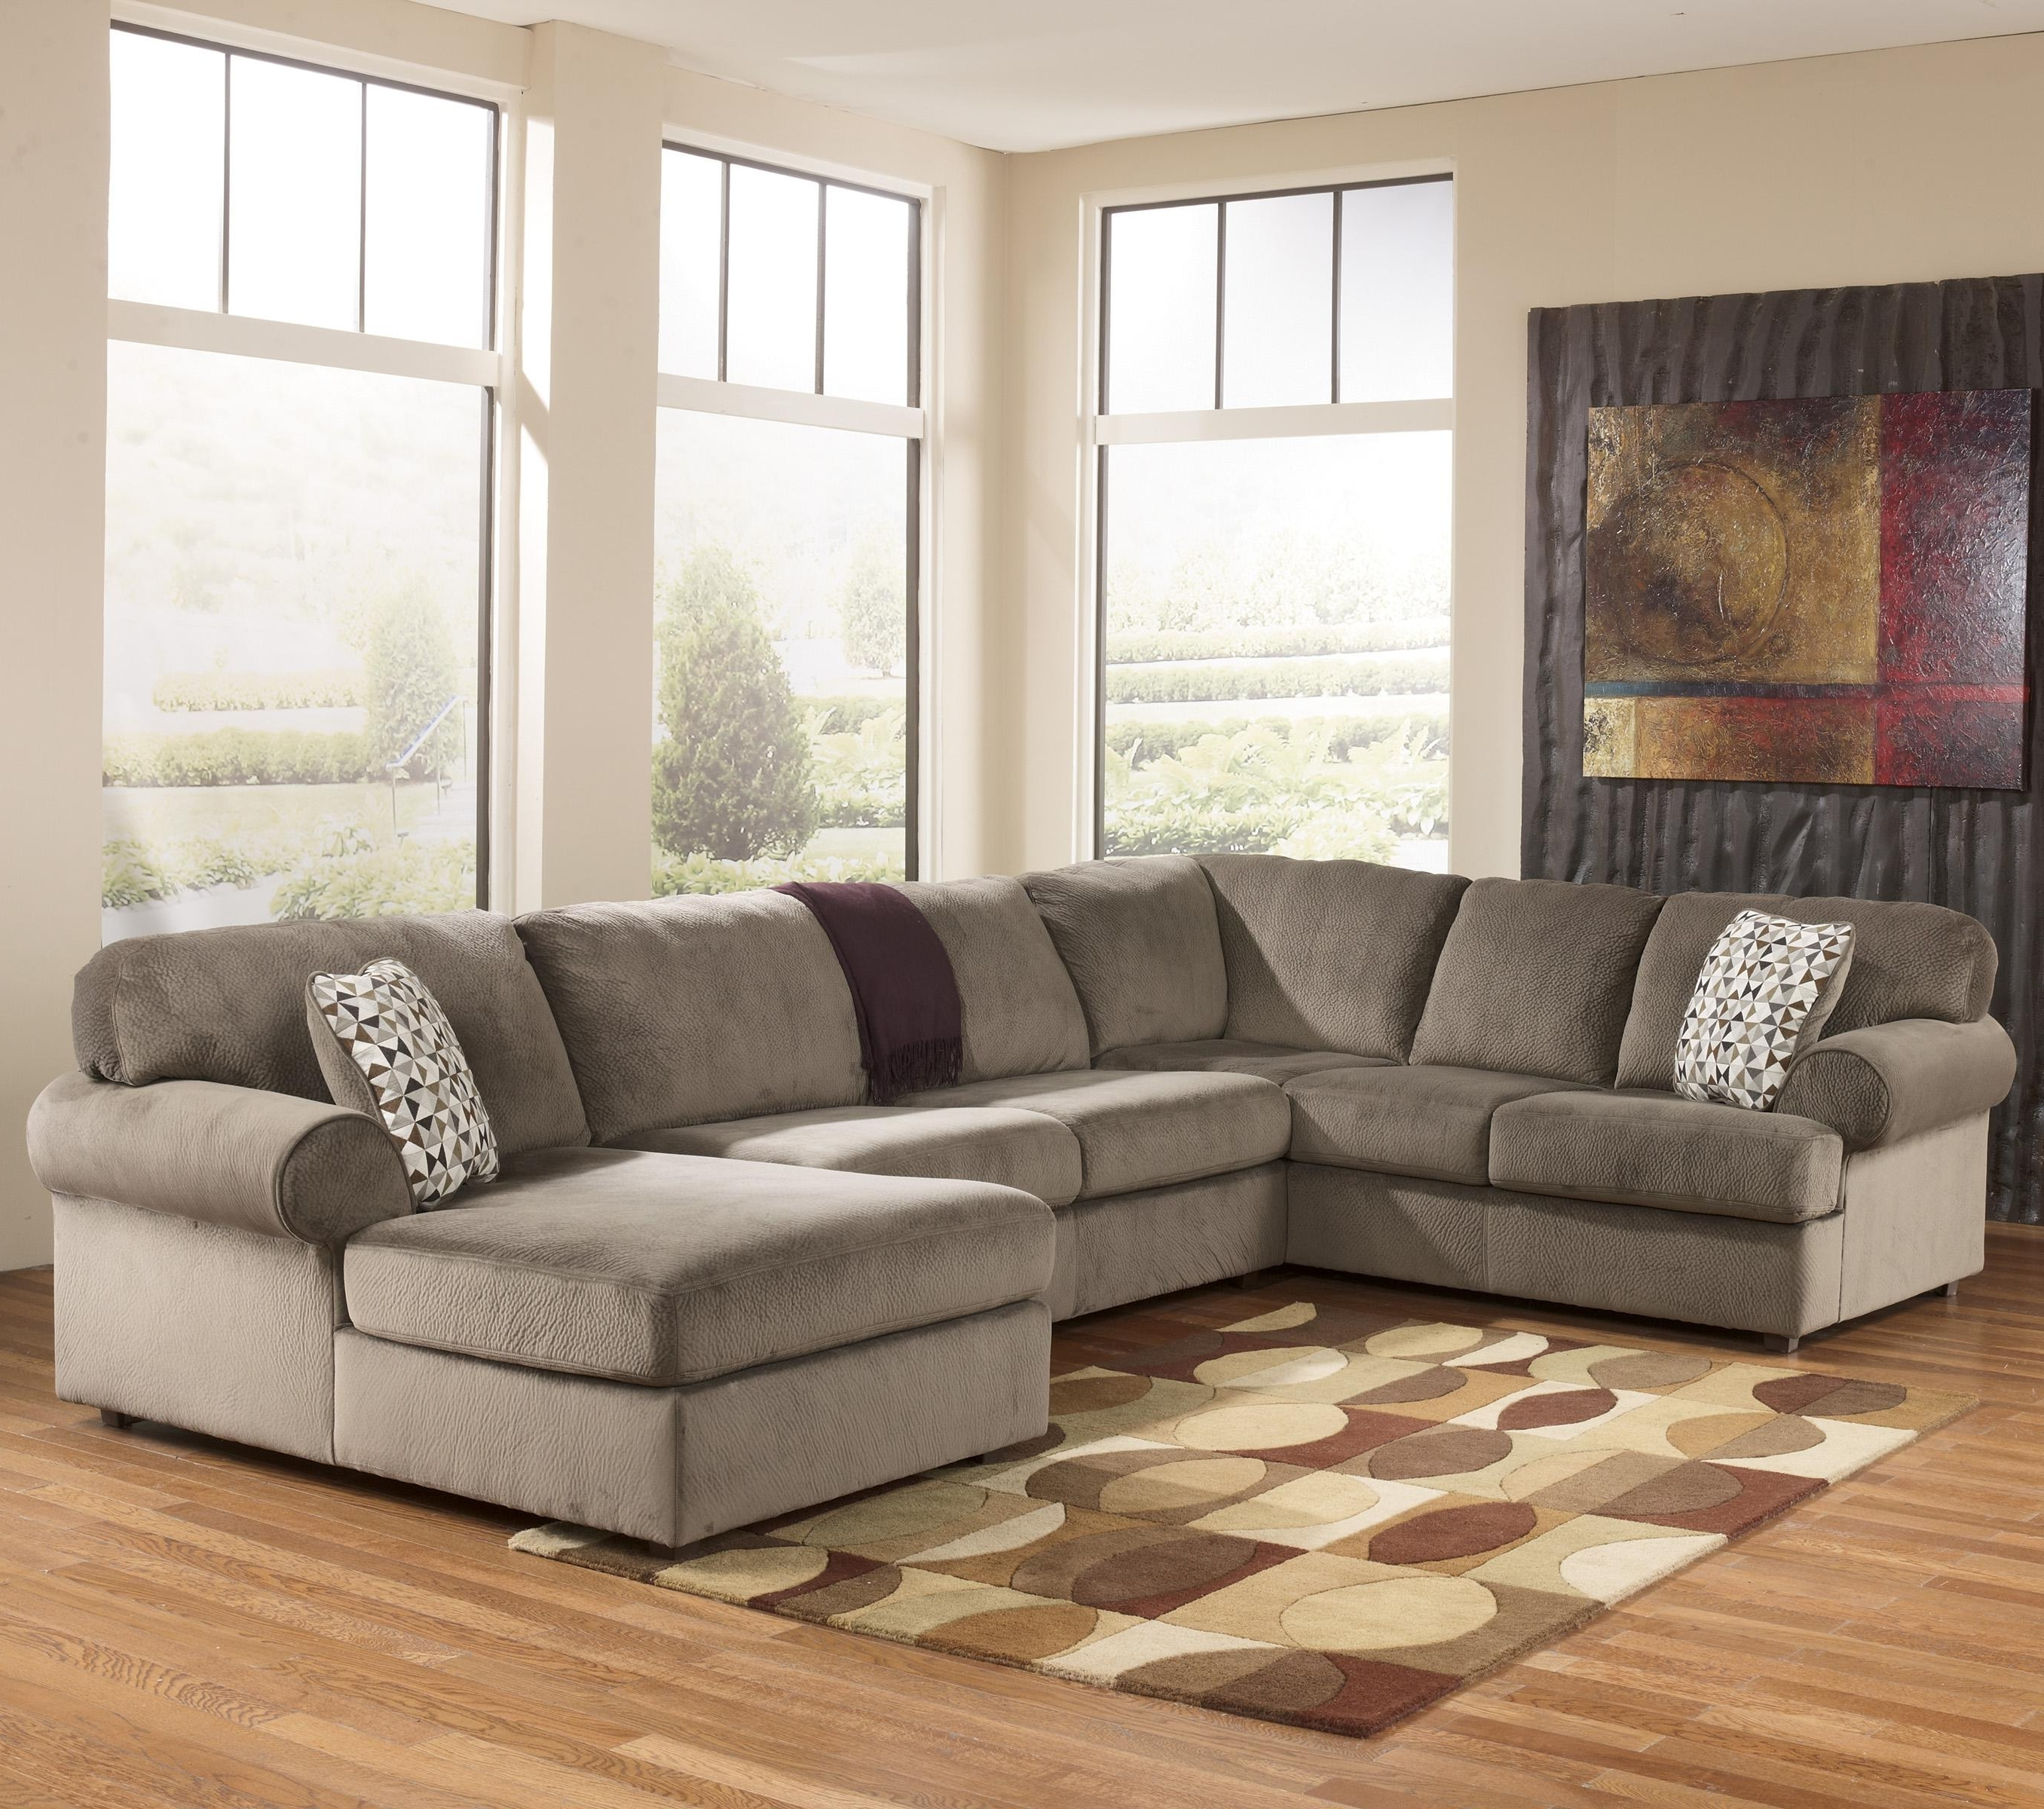 Ashley Within Nj Sectional Sofas (View 9 of 15)